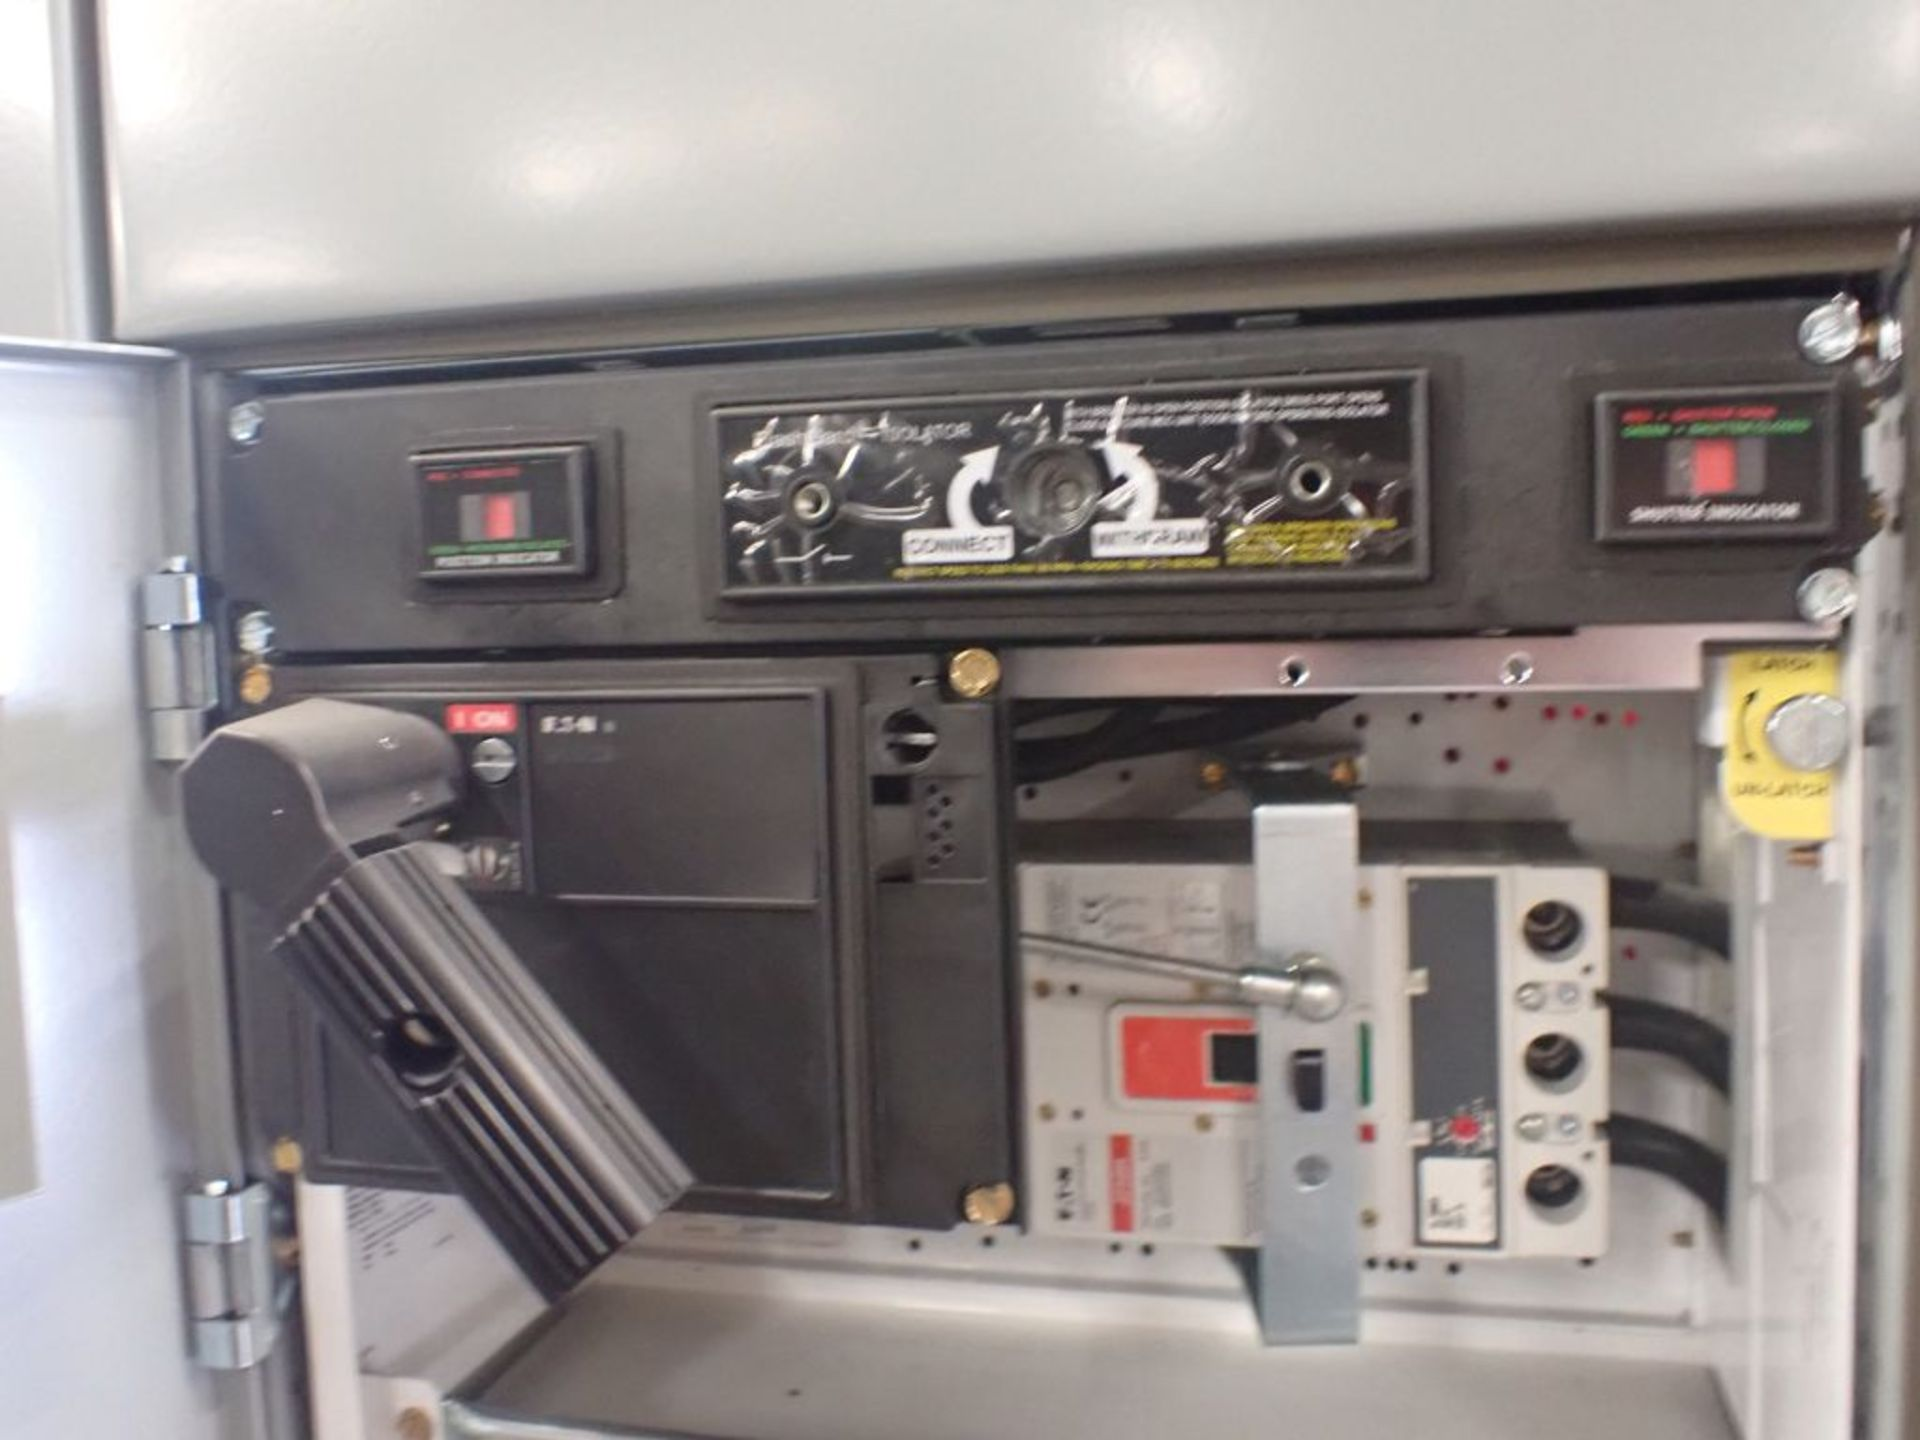 Eaton Freedom 2100 Series Motor Control Center   (2) F206-15A-10HP; (1) F206-30A-10HP; (1) FDRB- - Image 40 of 61